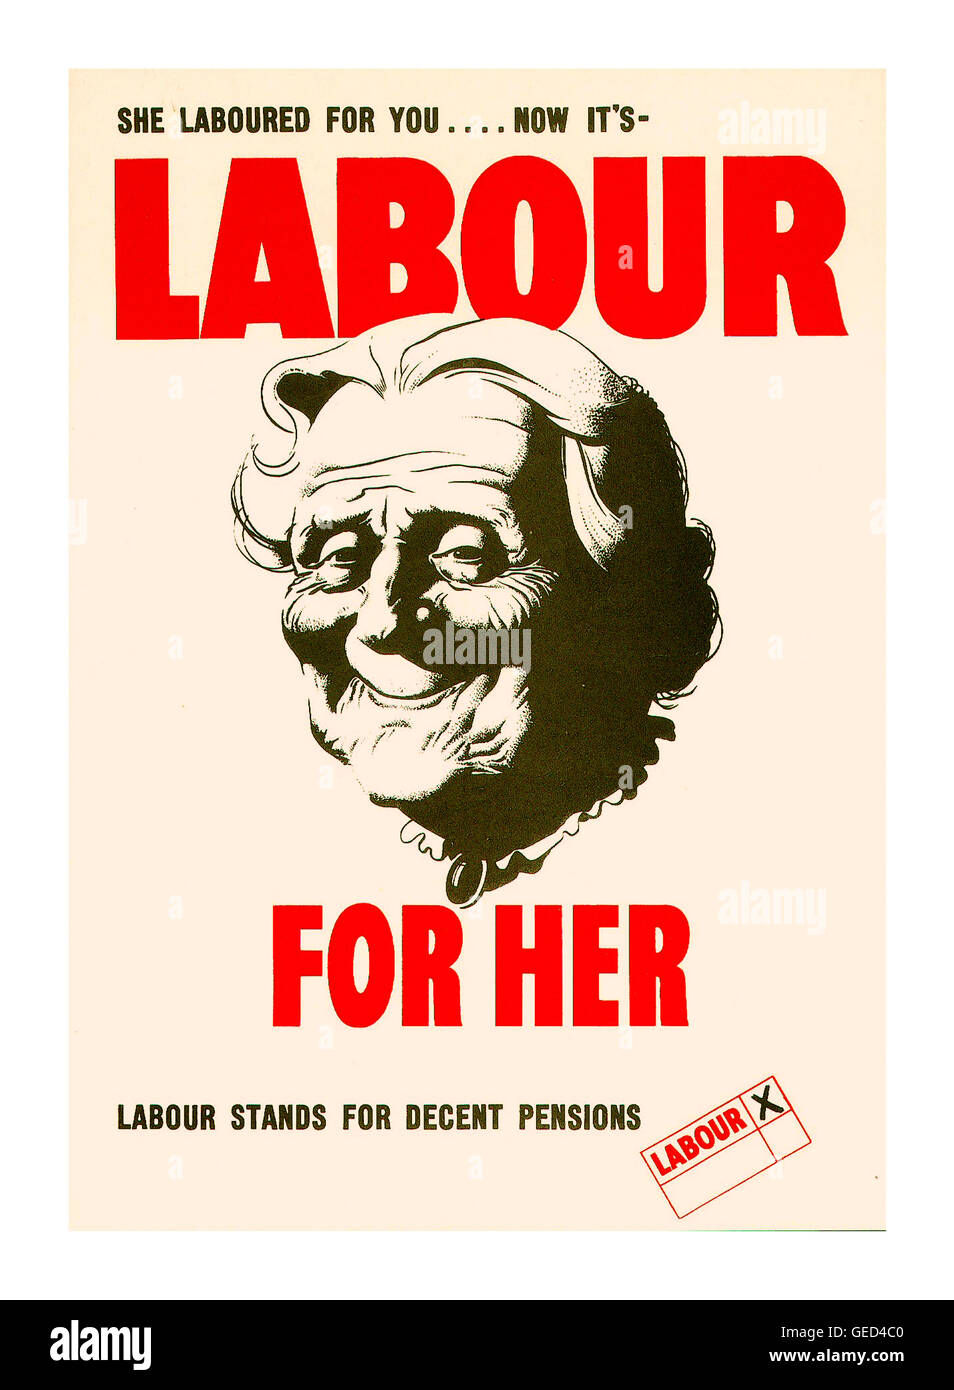 Historic vintage Labour Party Poster from post-war 1945